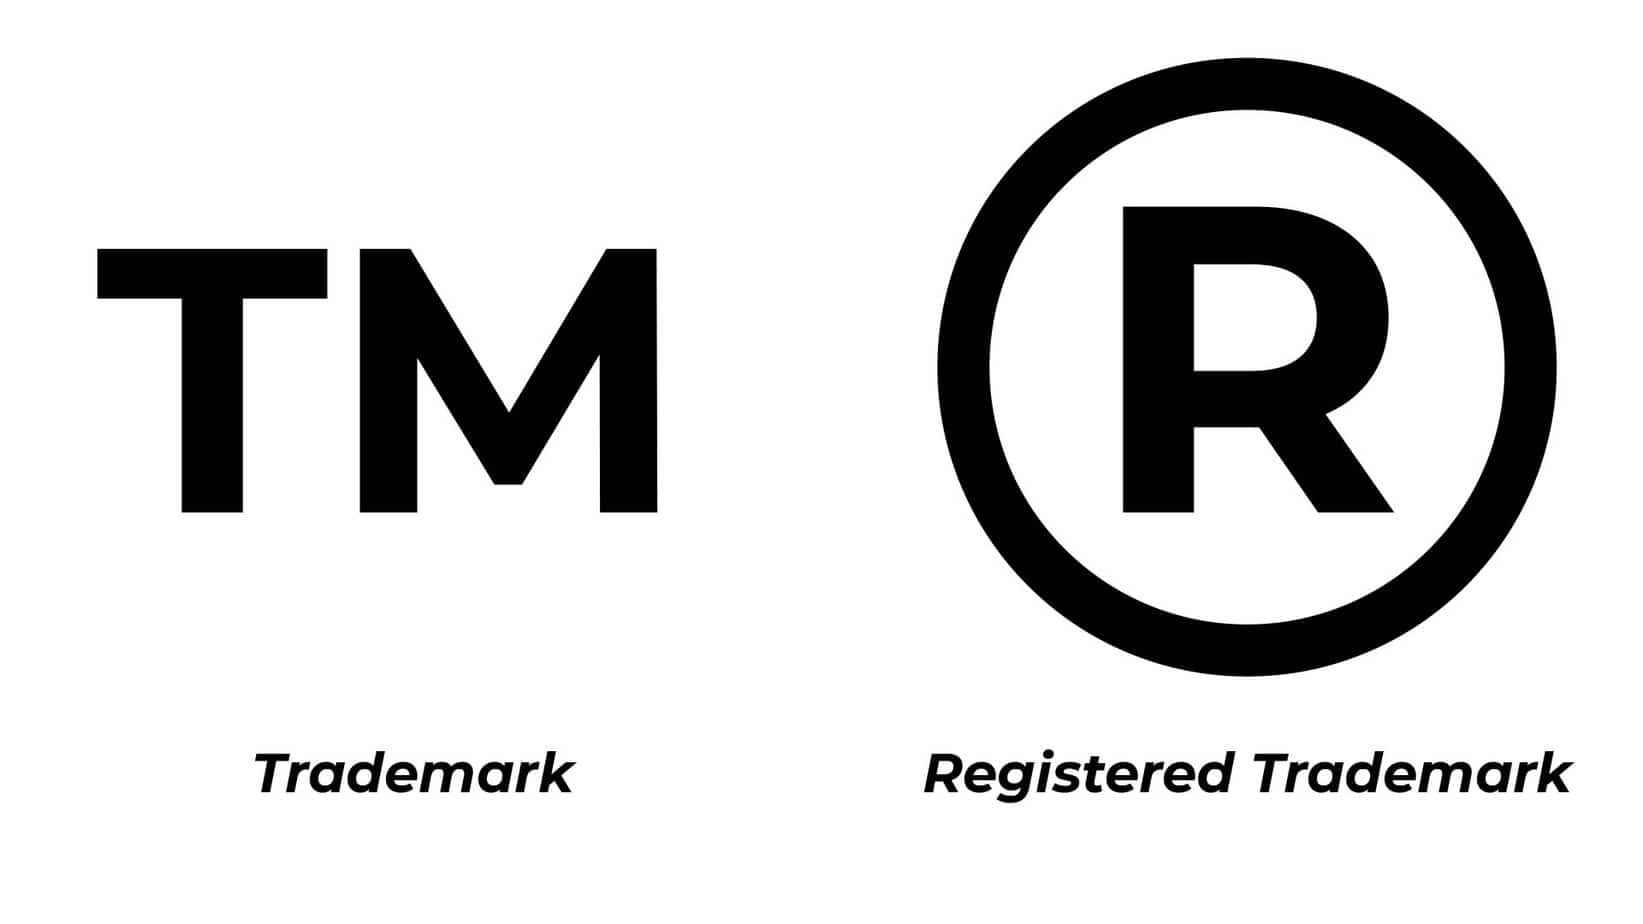 Should You Have A Registered Trademark